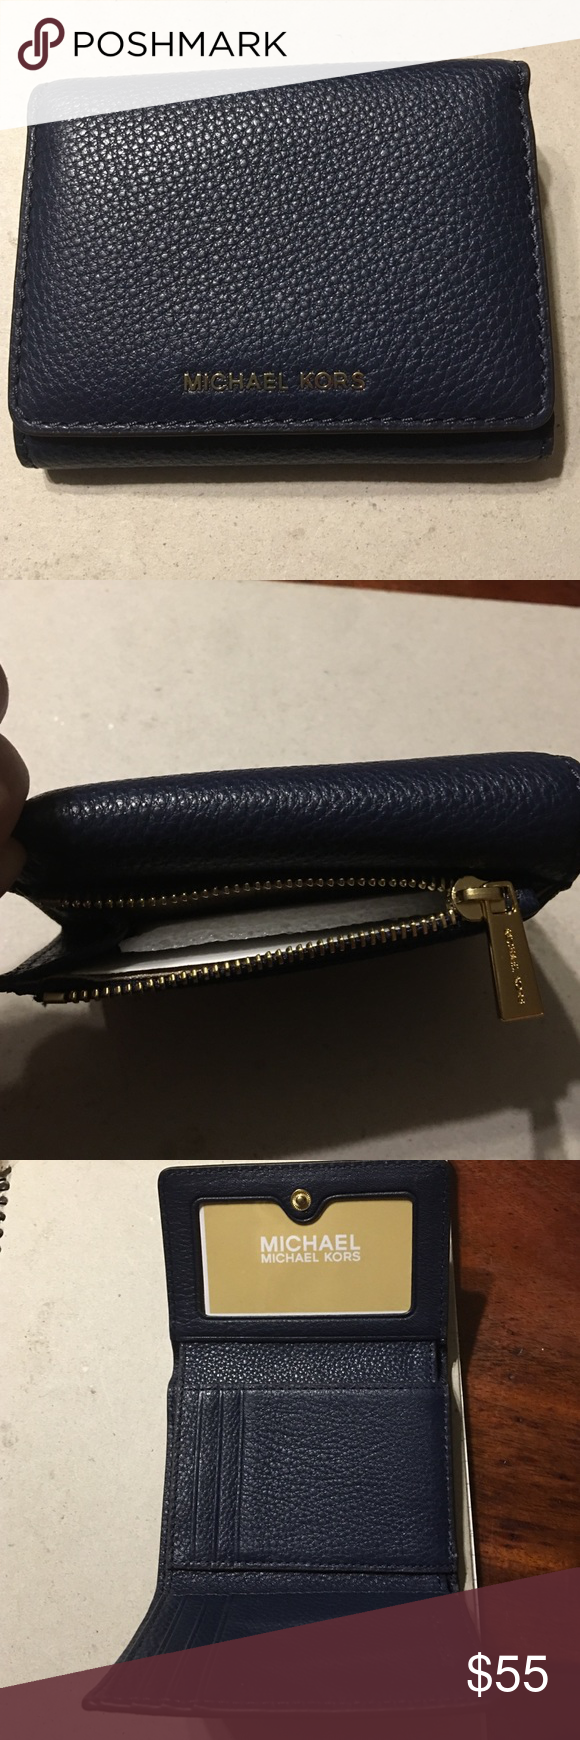 e385ae258420 MICHAEL KORS LIANE SMALL BILLFOLD Leather Navy Blue, Exterior Gold-tone  Logo on Front